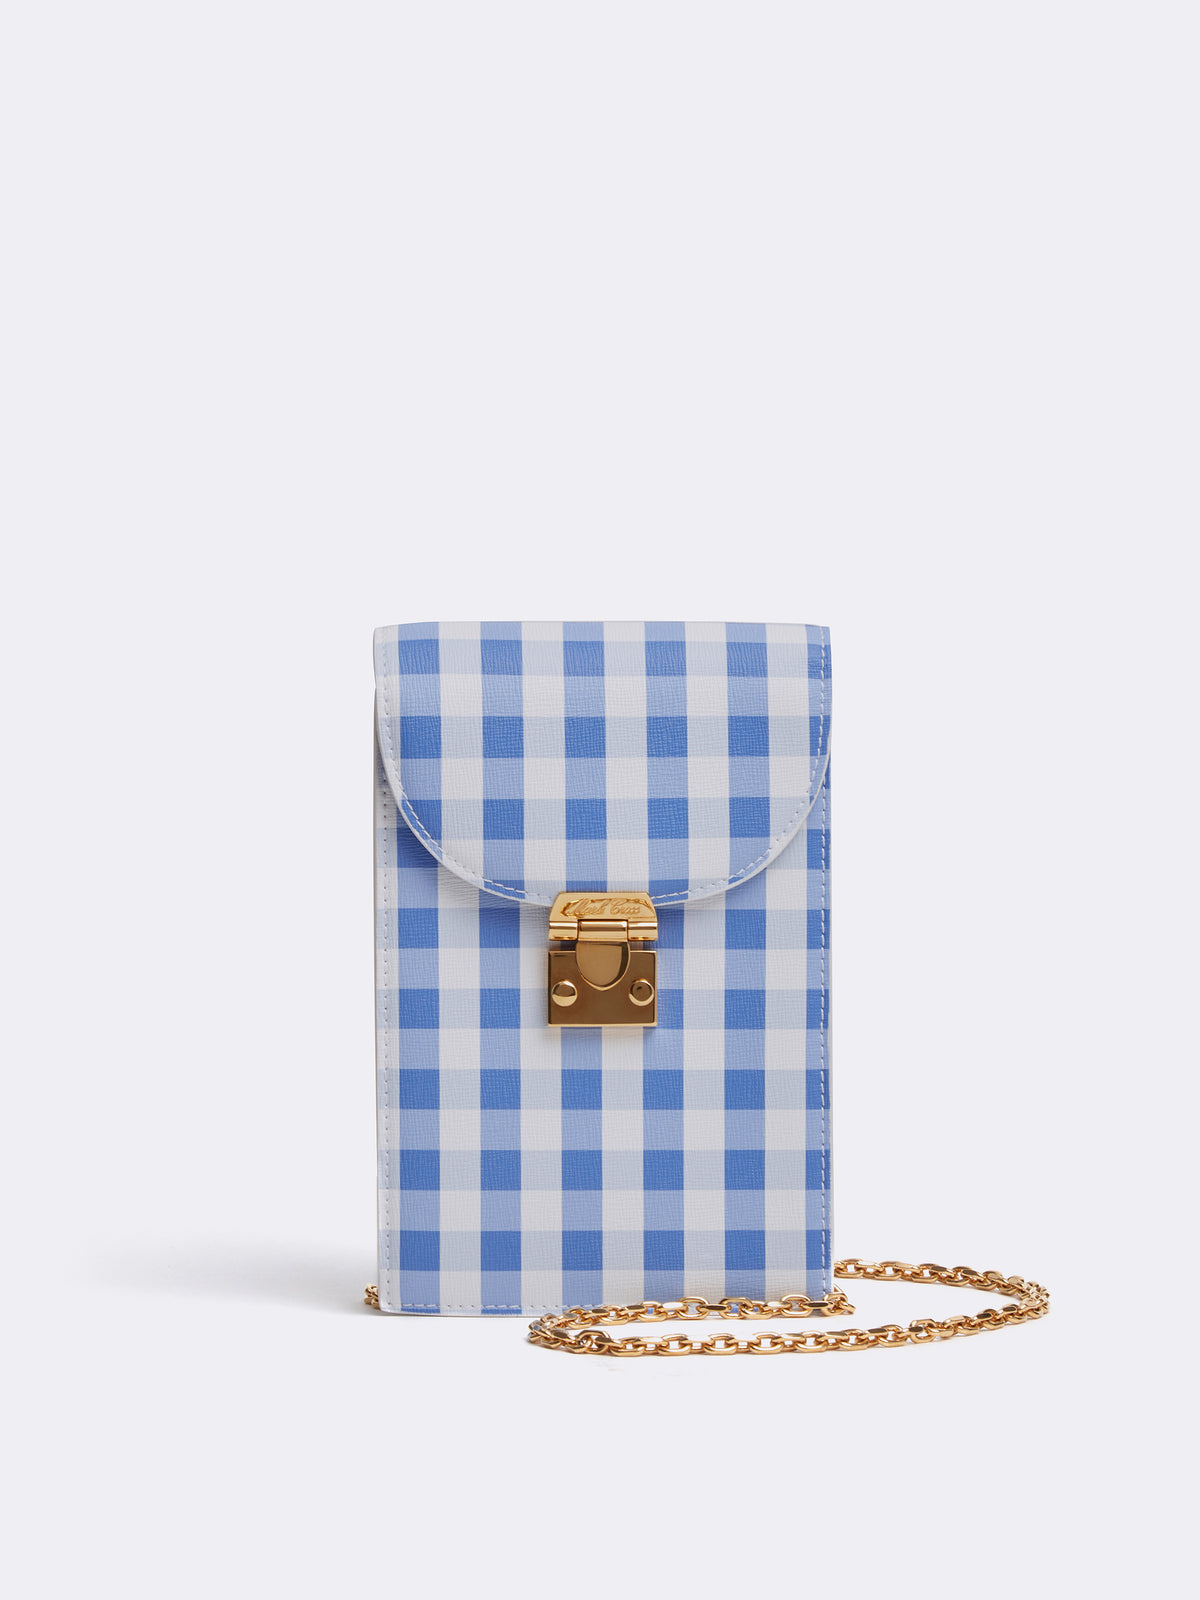 Mark Cross Francis Leather Cell Phone Bag Mini Franzi Gingham Regatta Blue Front